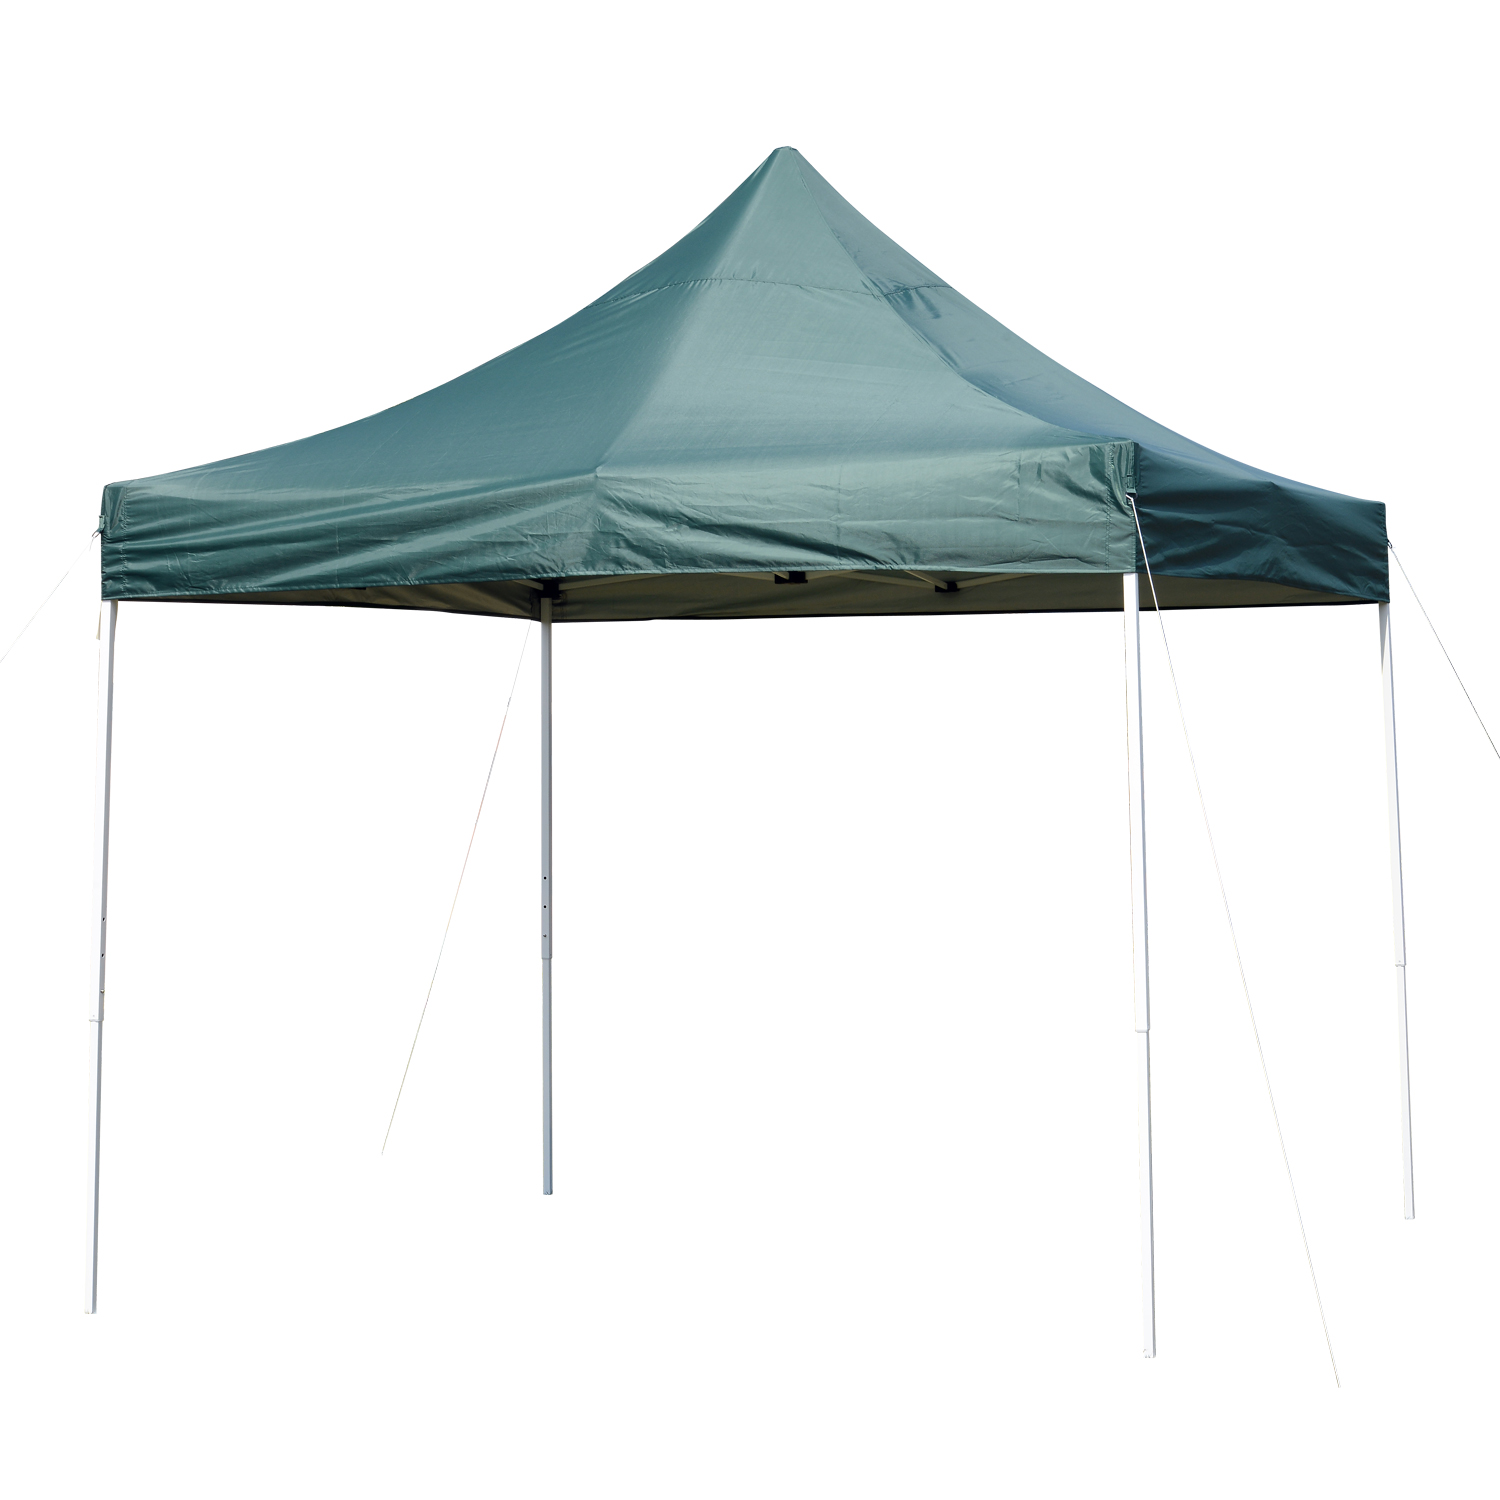 Image of £35.99 Outsunny Pop-up Tent Canopy, 3x3 m-Green / 3M x Garden Canopy Sun Shelter Party Marquee Wedding Gazebo w/Carry Bag - Green Carry 84C-076GN 5056029889701